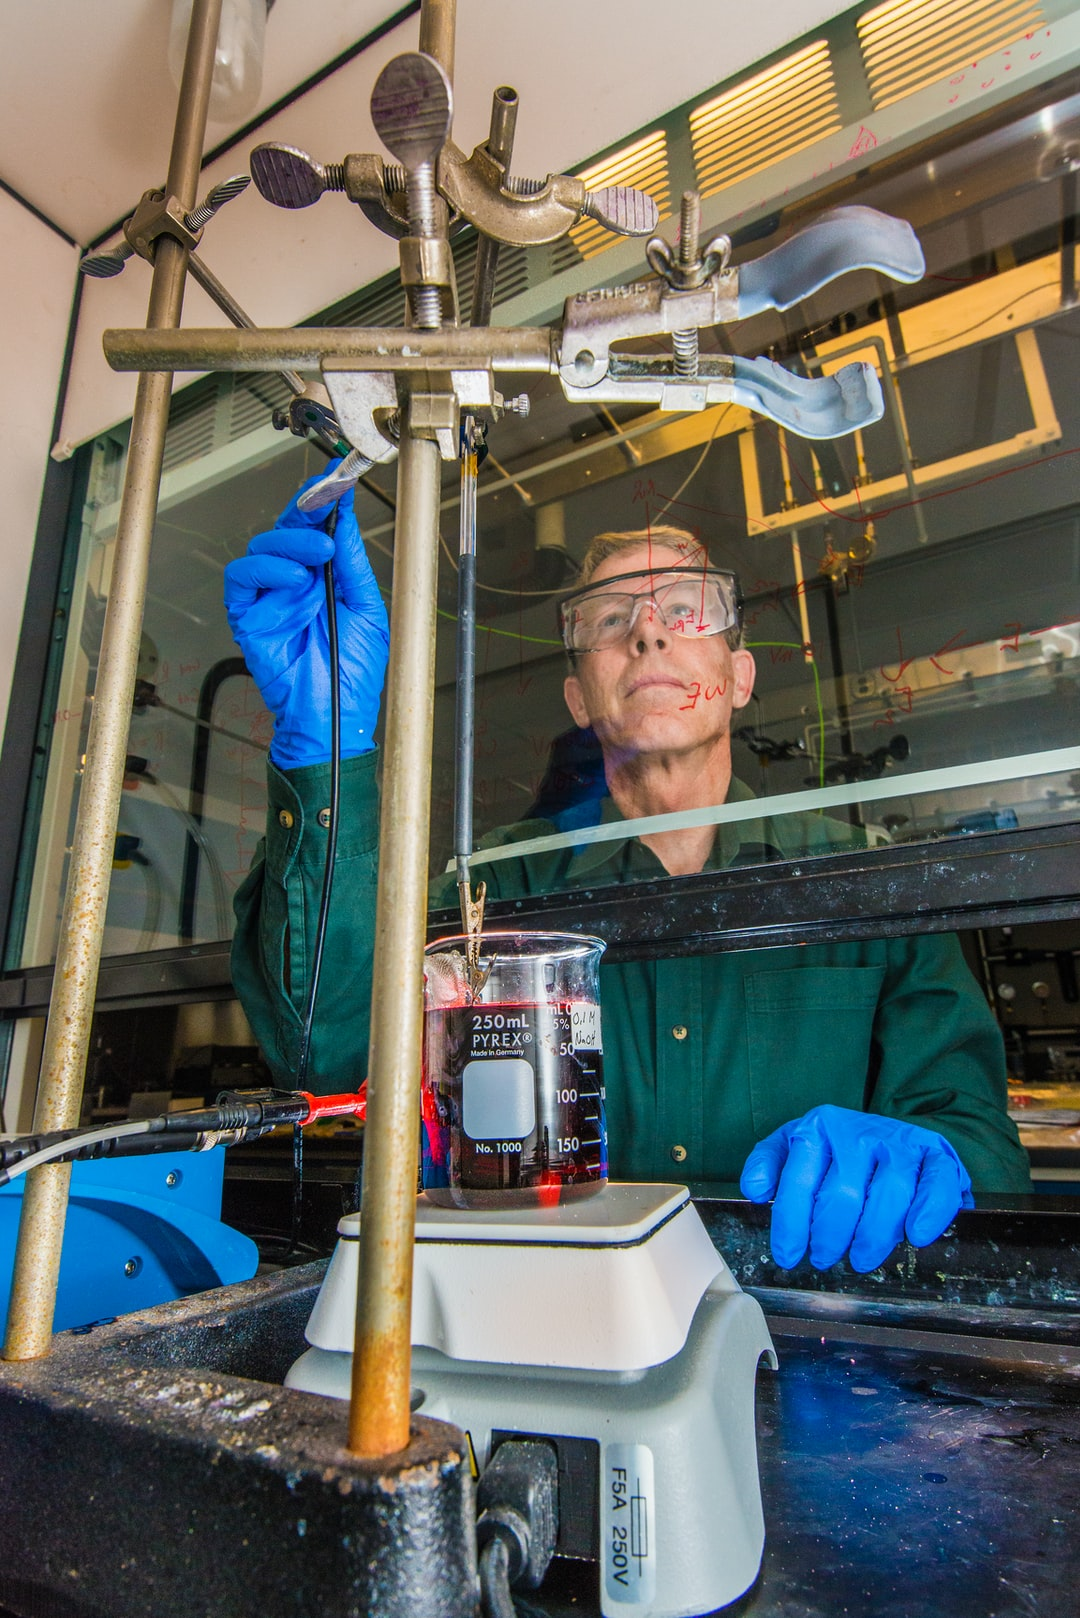 SANDIA NATIONAL LABORATORIES COLLEAGUES HAVE DEVELOPED A SINGLE ELECTROFORMING TECHNIQUE THAT TAILORED KEY FACTORS TO BETTER THERMOELECTRIC PERFORMANCE: CRYSTAL ORIENTATION, CRYSTAL SIZE AND ALLOY UNIFORMITY.